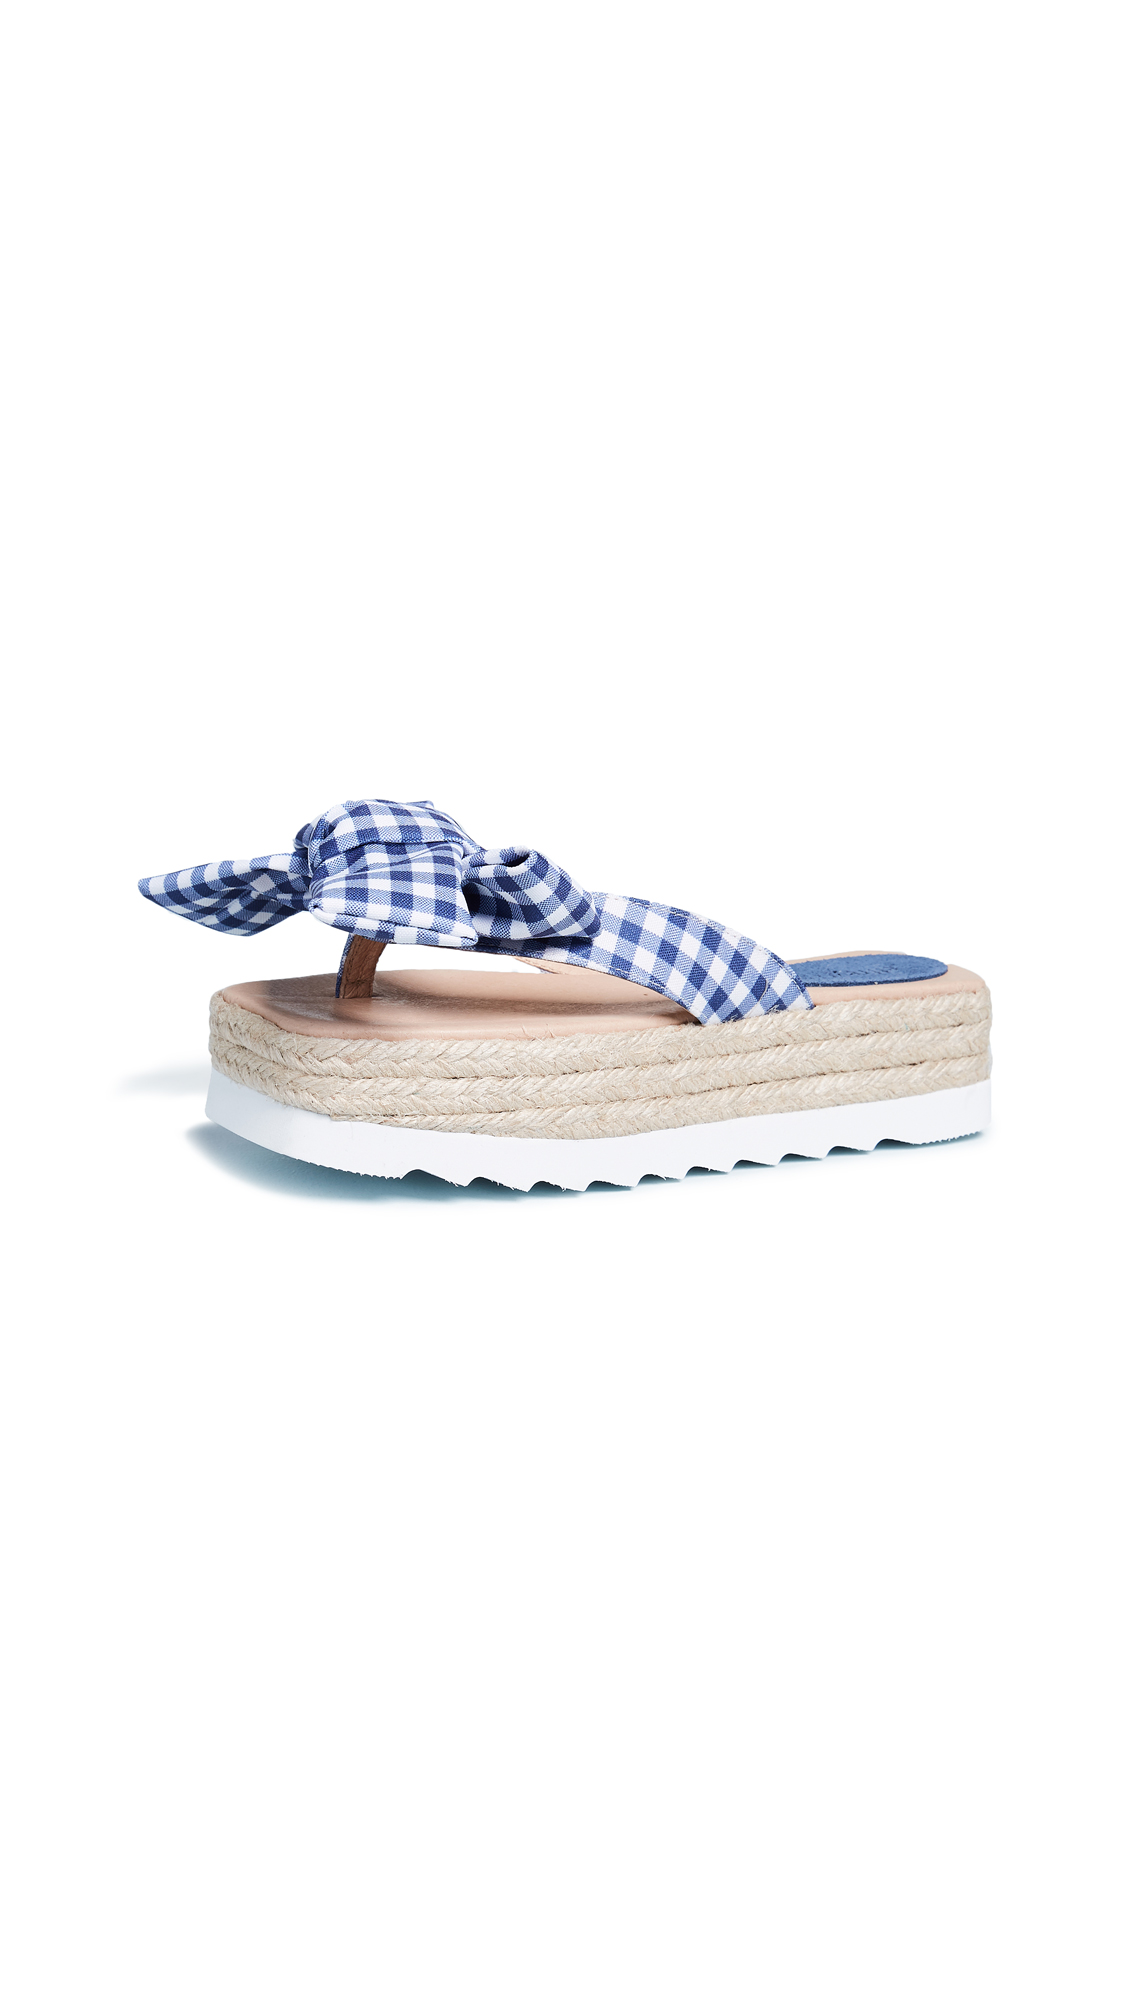 Jeffrey Campbell Gingham Bow Platform Slides - Blue/White